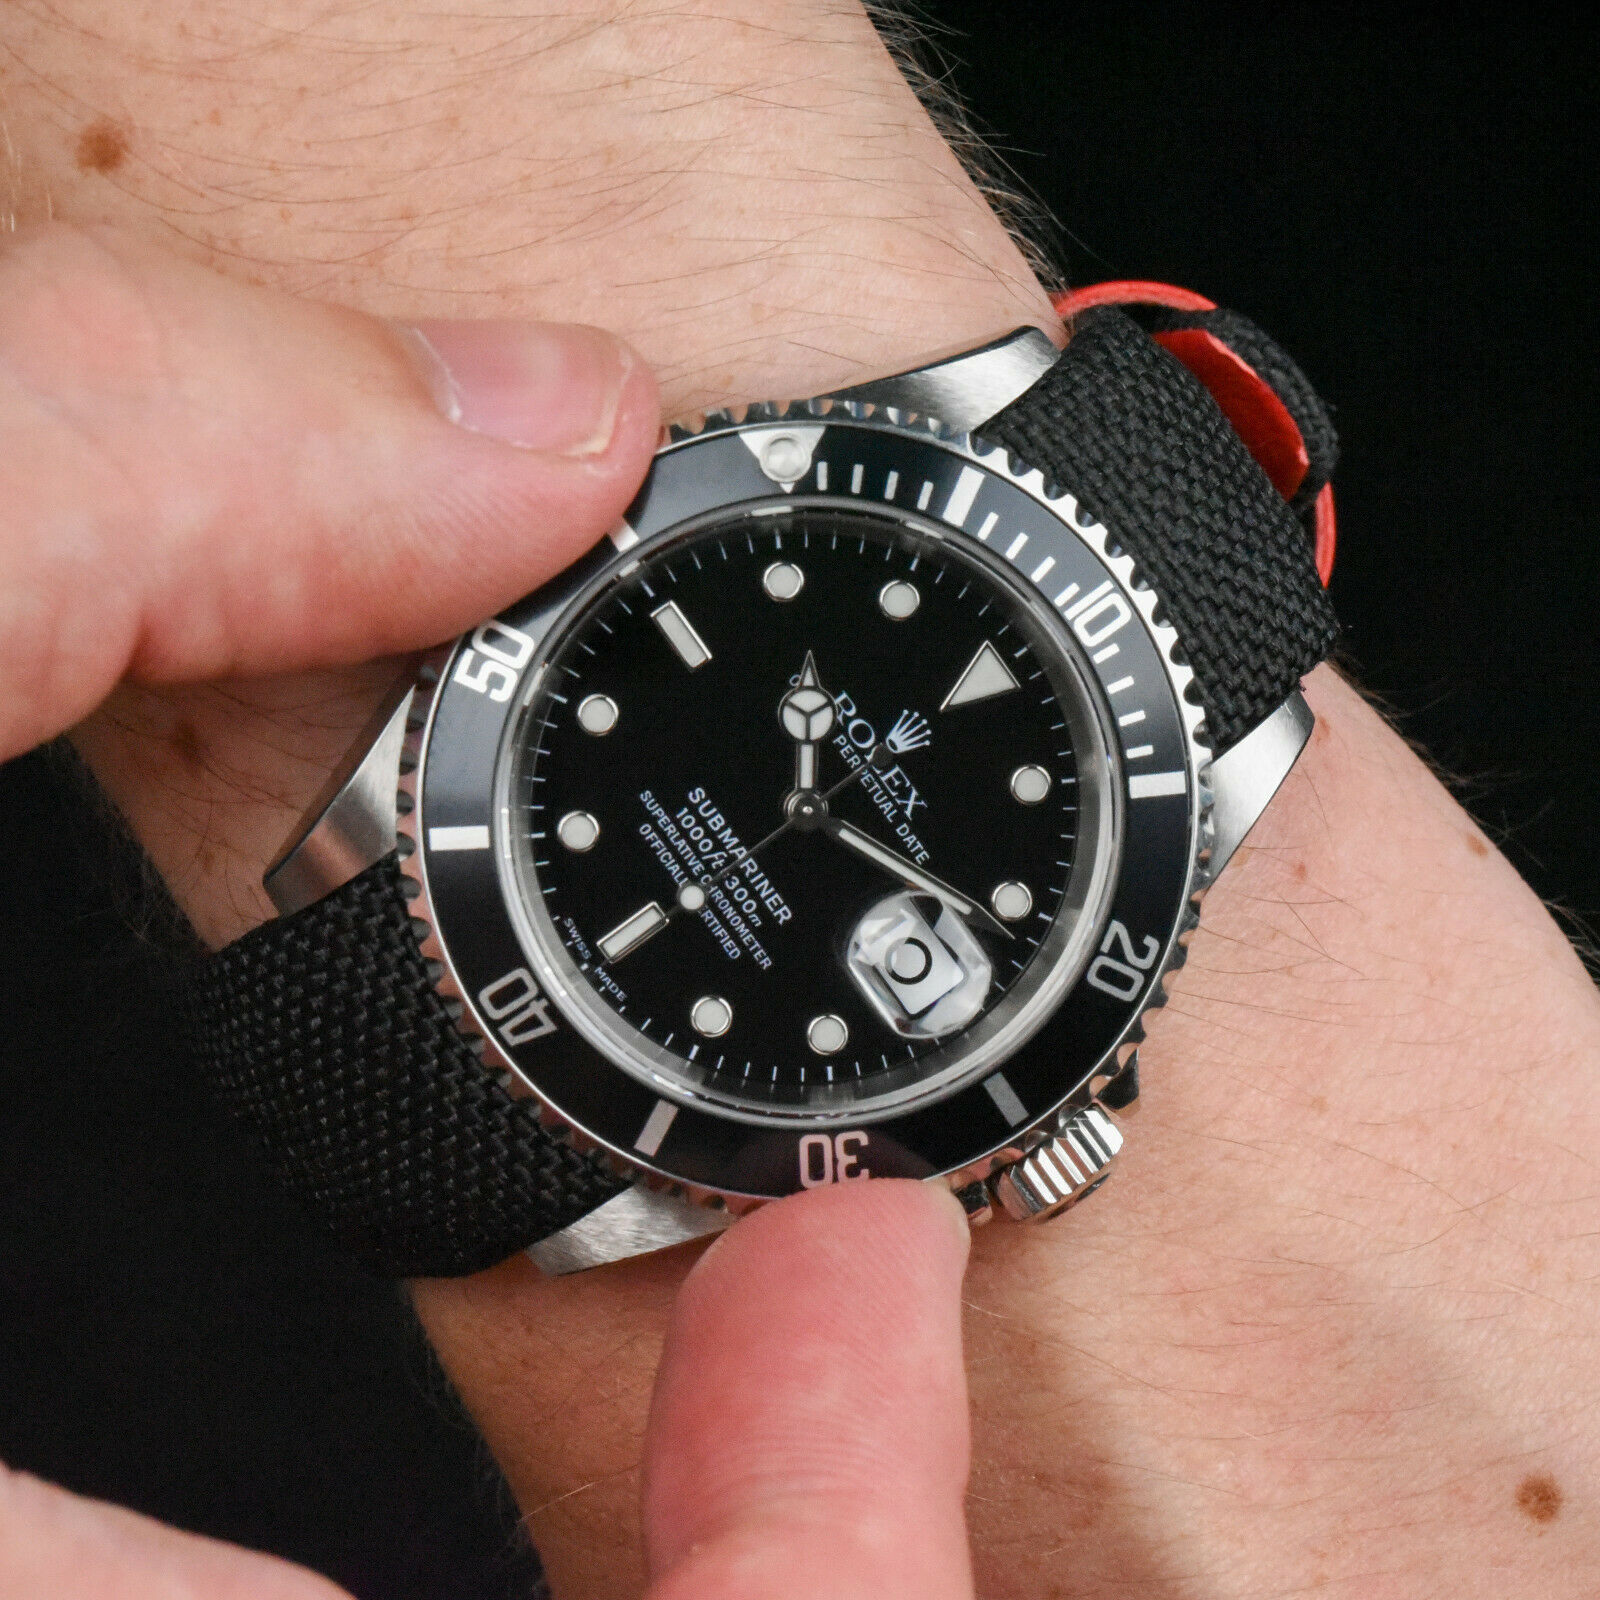 Everest Nylon in Black and Red on Rolex Sub   https://www.watchvault.com.au/strapstore/everest-curved-end-nylon-strap-for-rolex-with-tang-buckle